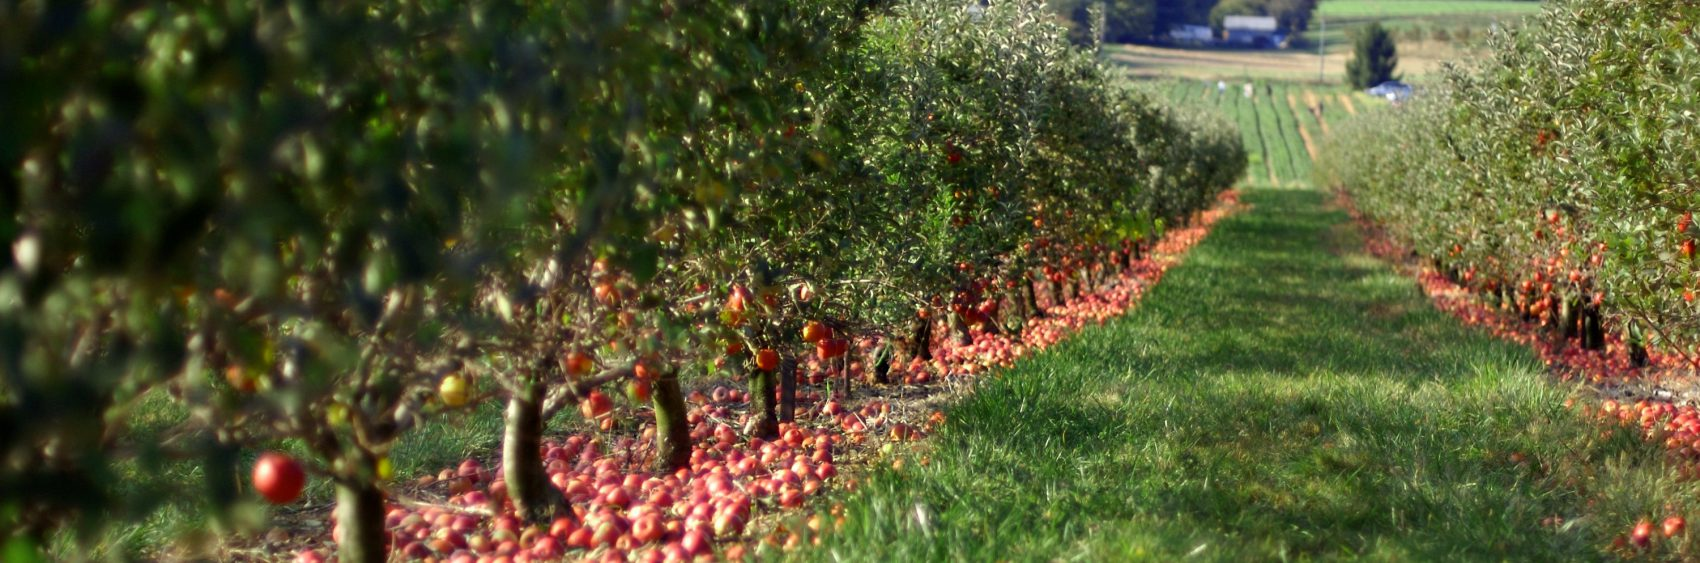 Beautiful rows of apples trees